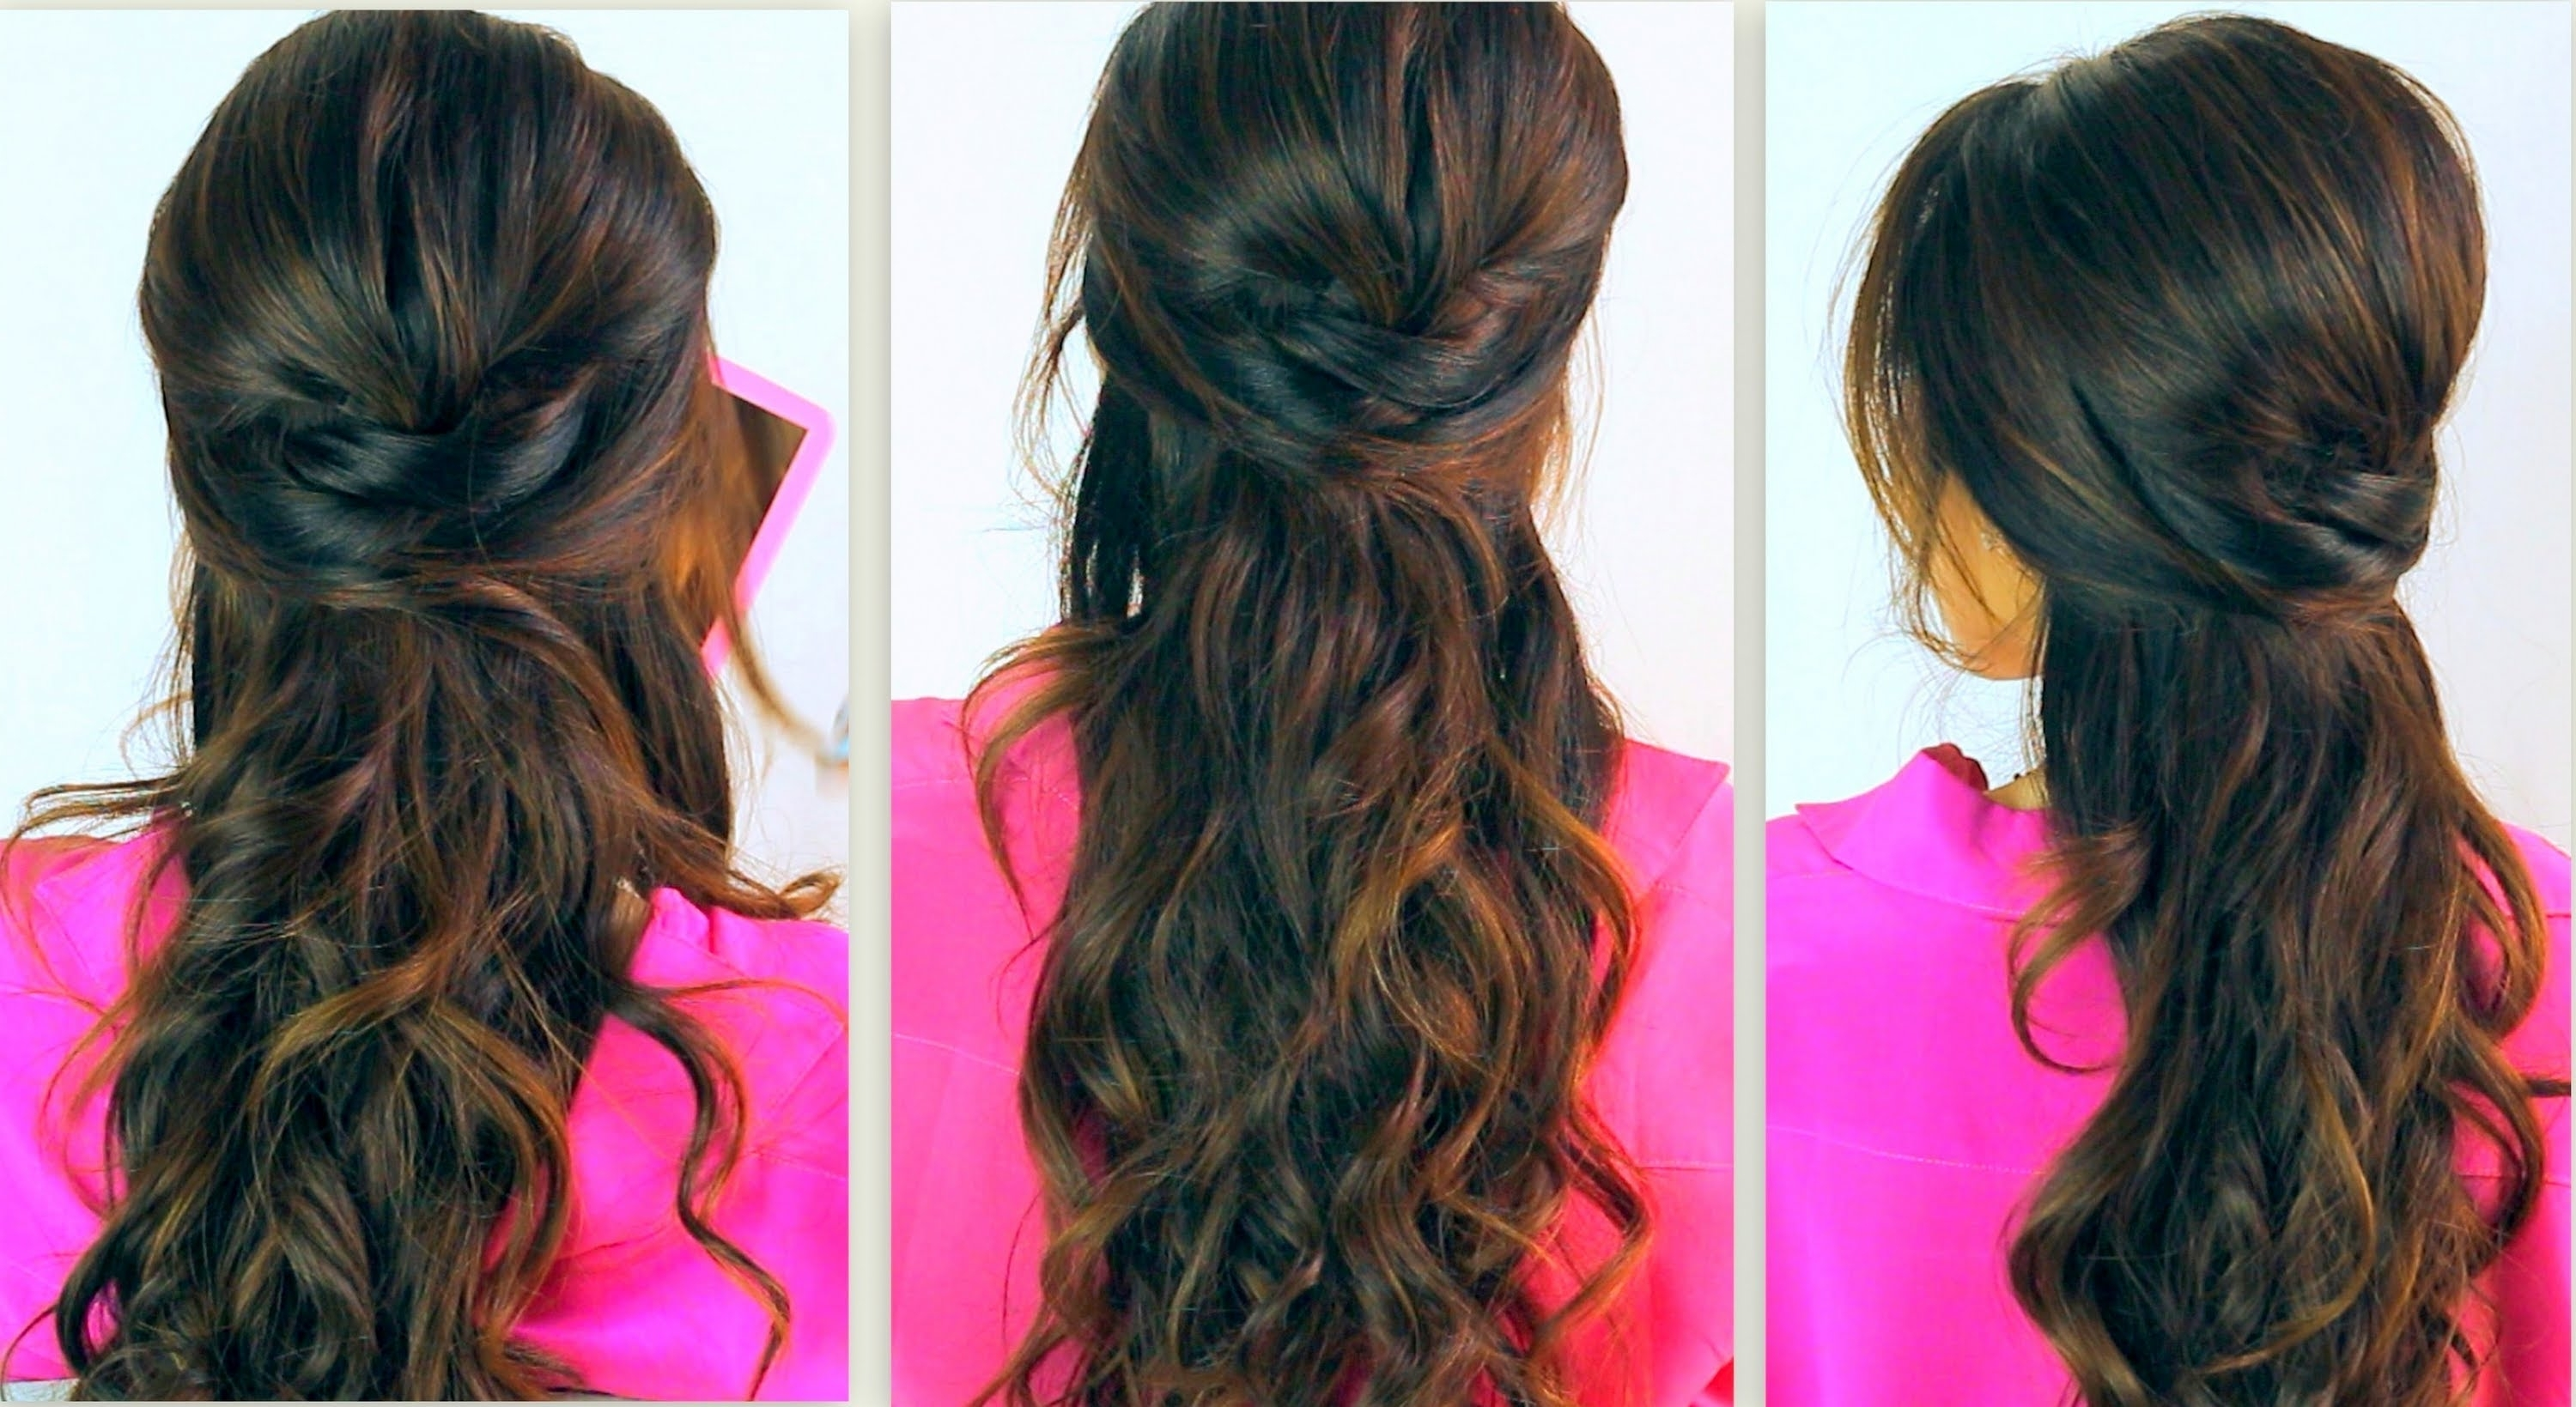 Half Up Half Down Wedding Hairstyles For Thin Hair – Top Hairstyle Ideas With Regard To Widely Used Wedding Hairstyles Down For Thin Hair (View 3 of 15)